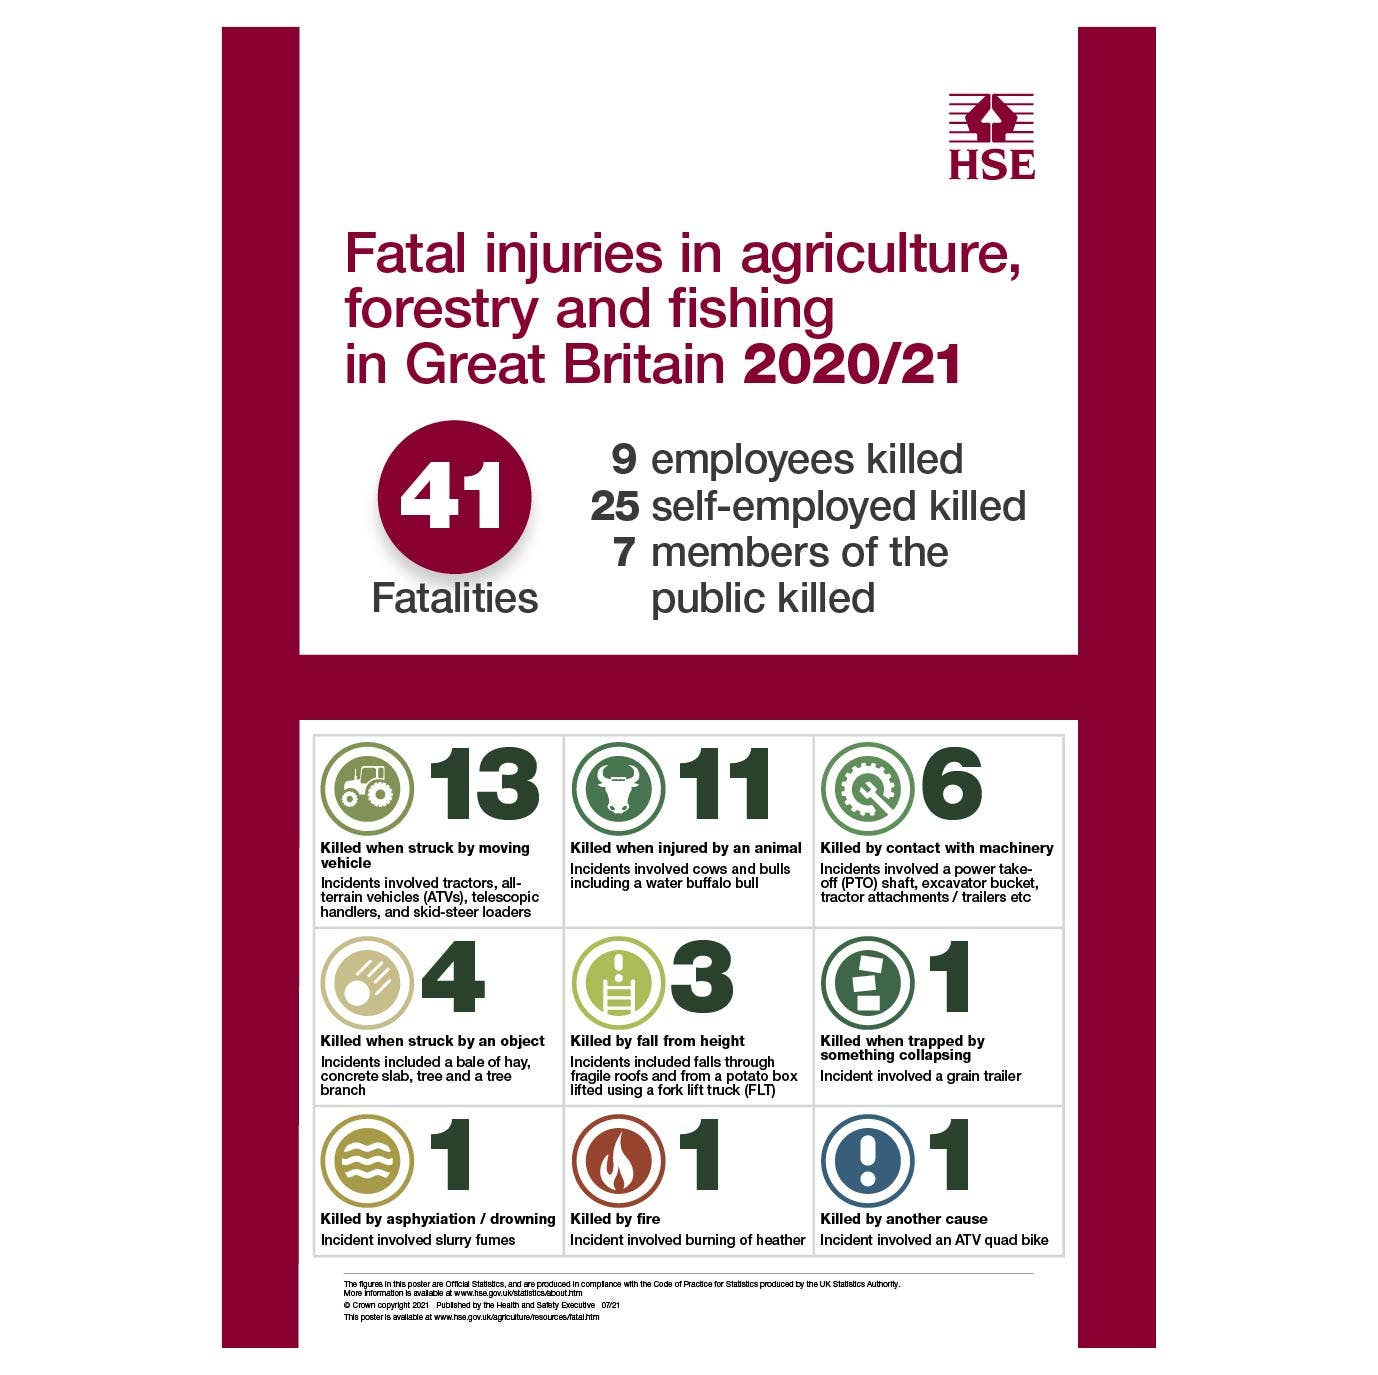 Fatal injuries in agriculture, forestry and fishing in Great Britain 2019/20